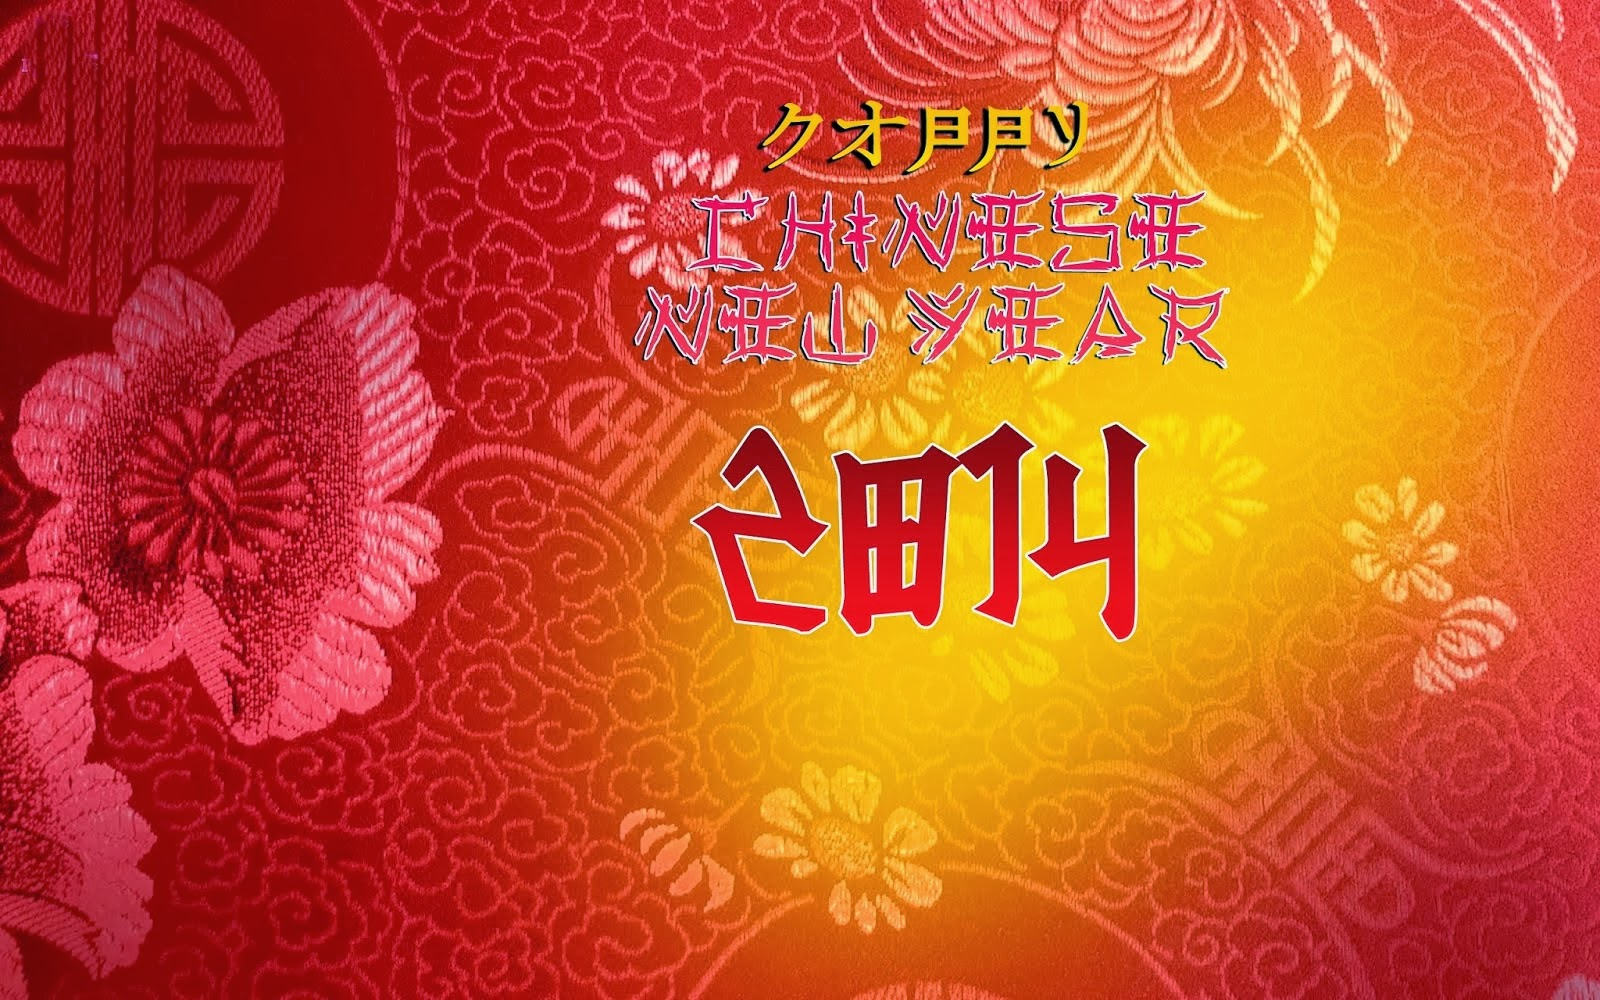 Happy chinese new year greetingssms messages with wishes happy chinese new year greetingssms messages with wishes wallpapers kristyandbryce Choice Image